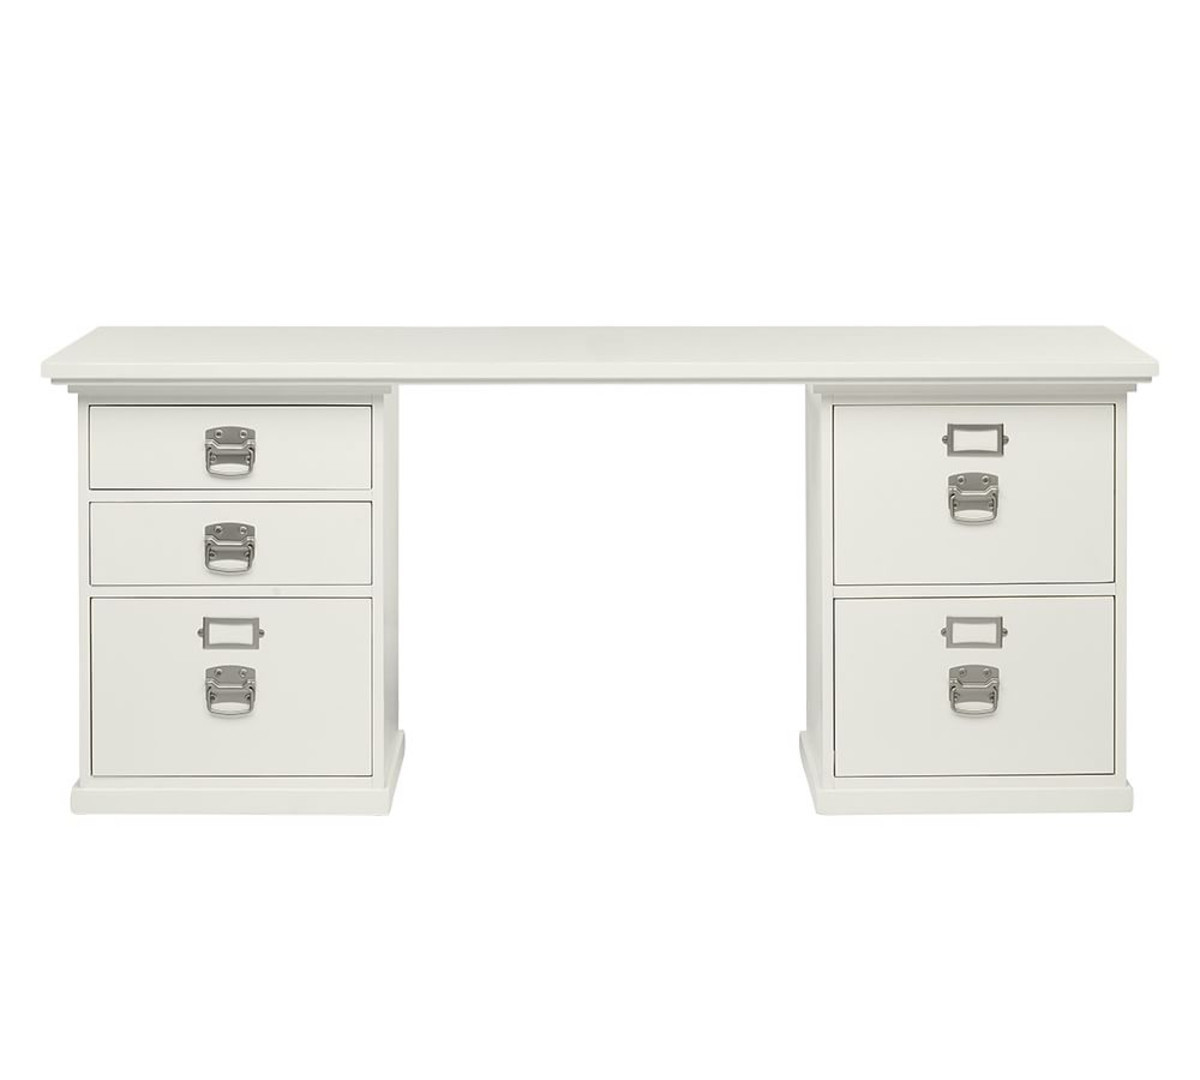 17 Amazing Pottery Barn Vase Filler 2021 free download pottery barn vase filler of bedford rectangular desk antique white pottery barn ca pertaining to bedford rectangular desk antique white